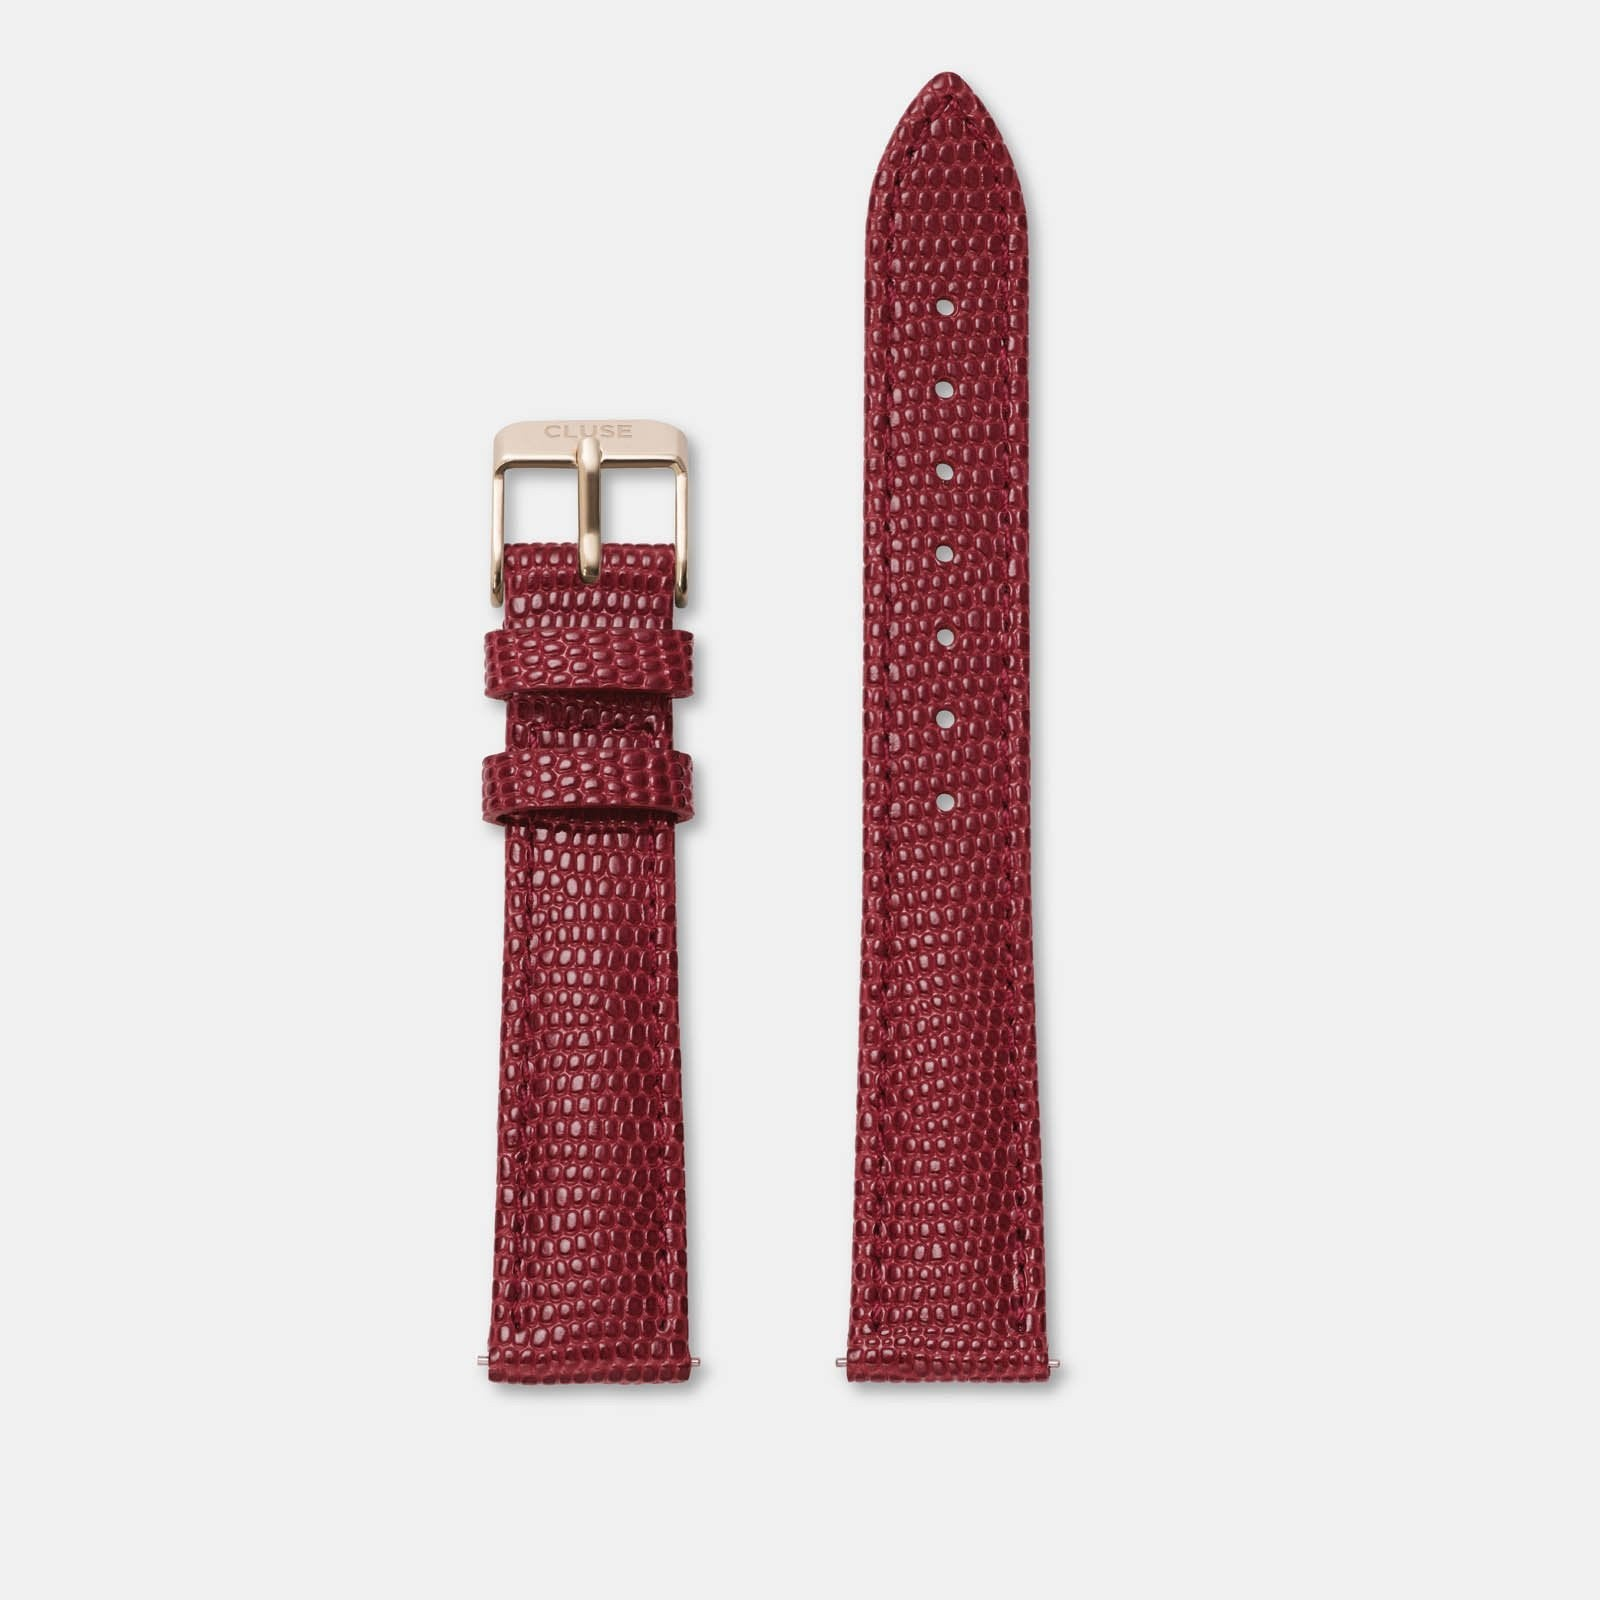 CLUSE 16 mm Strap Deep Red Lizard/Rose Gold CLS383 - Cinturino